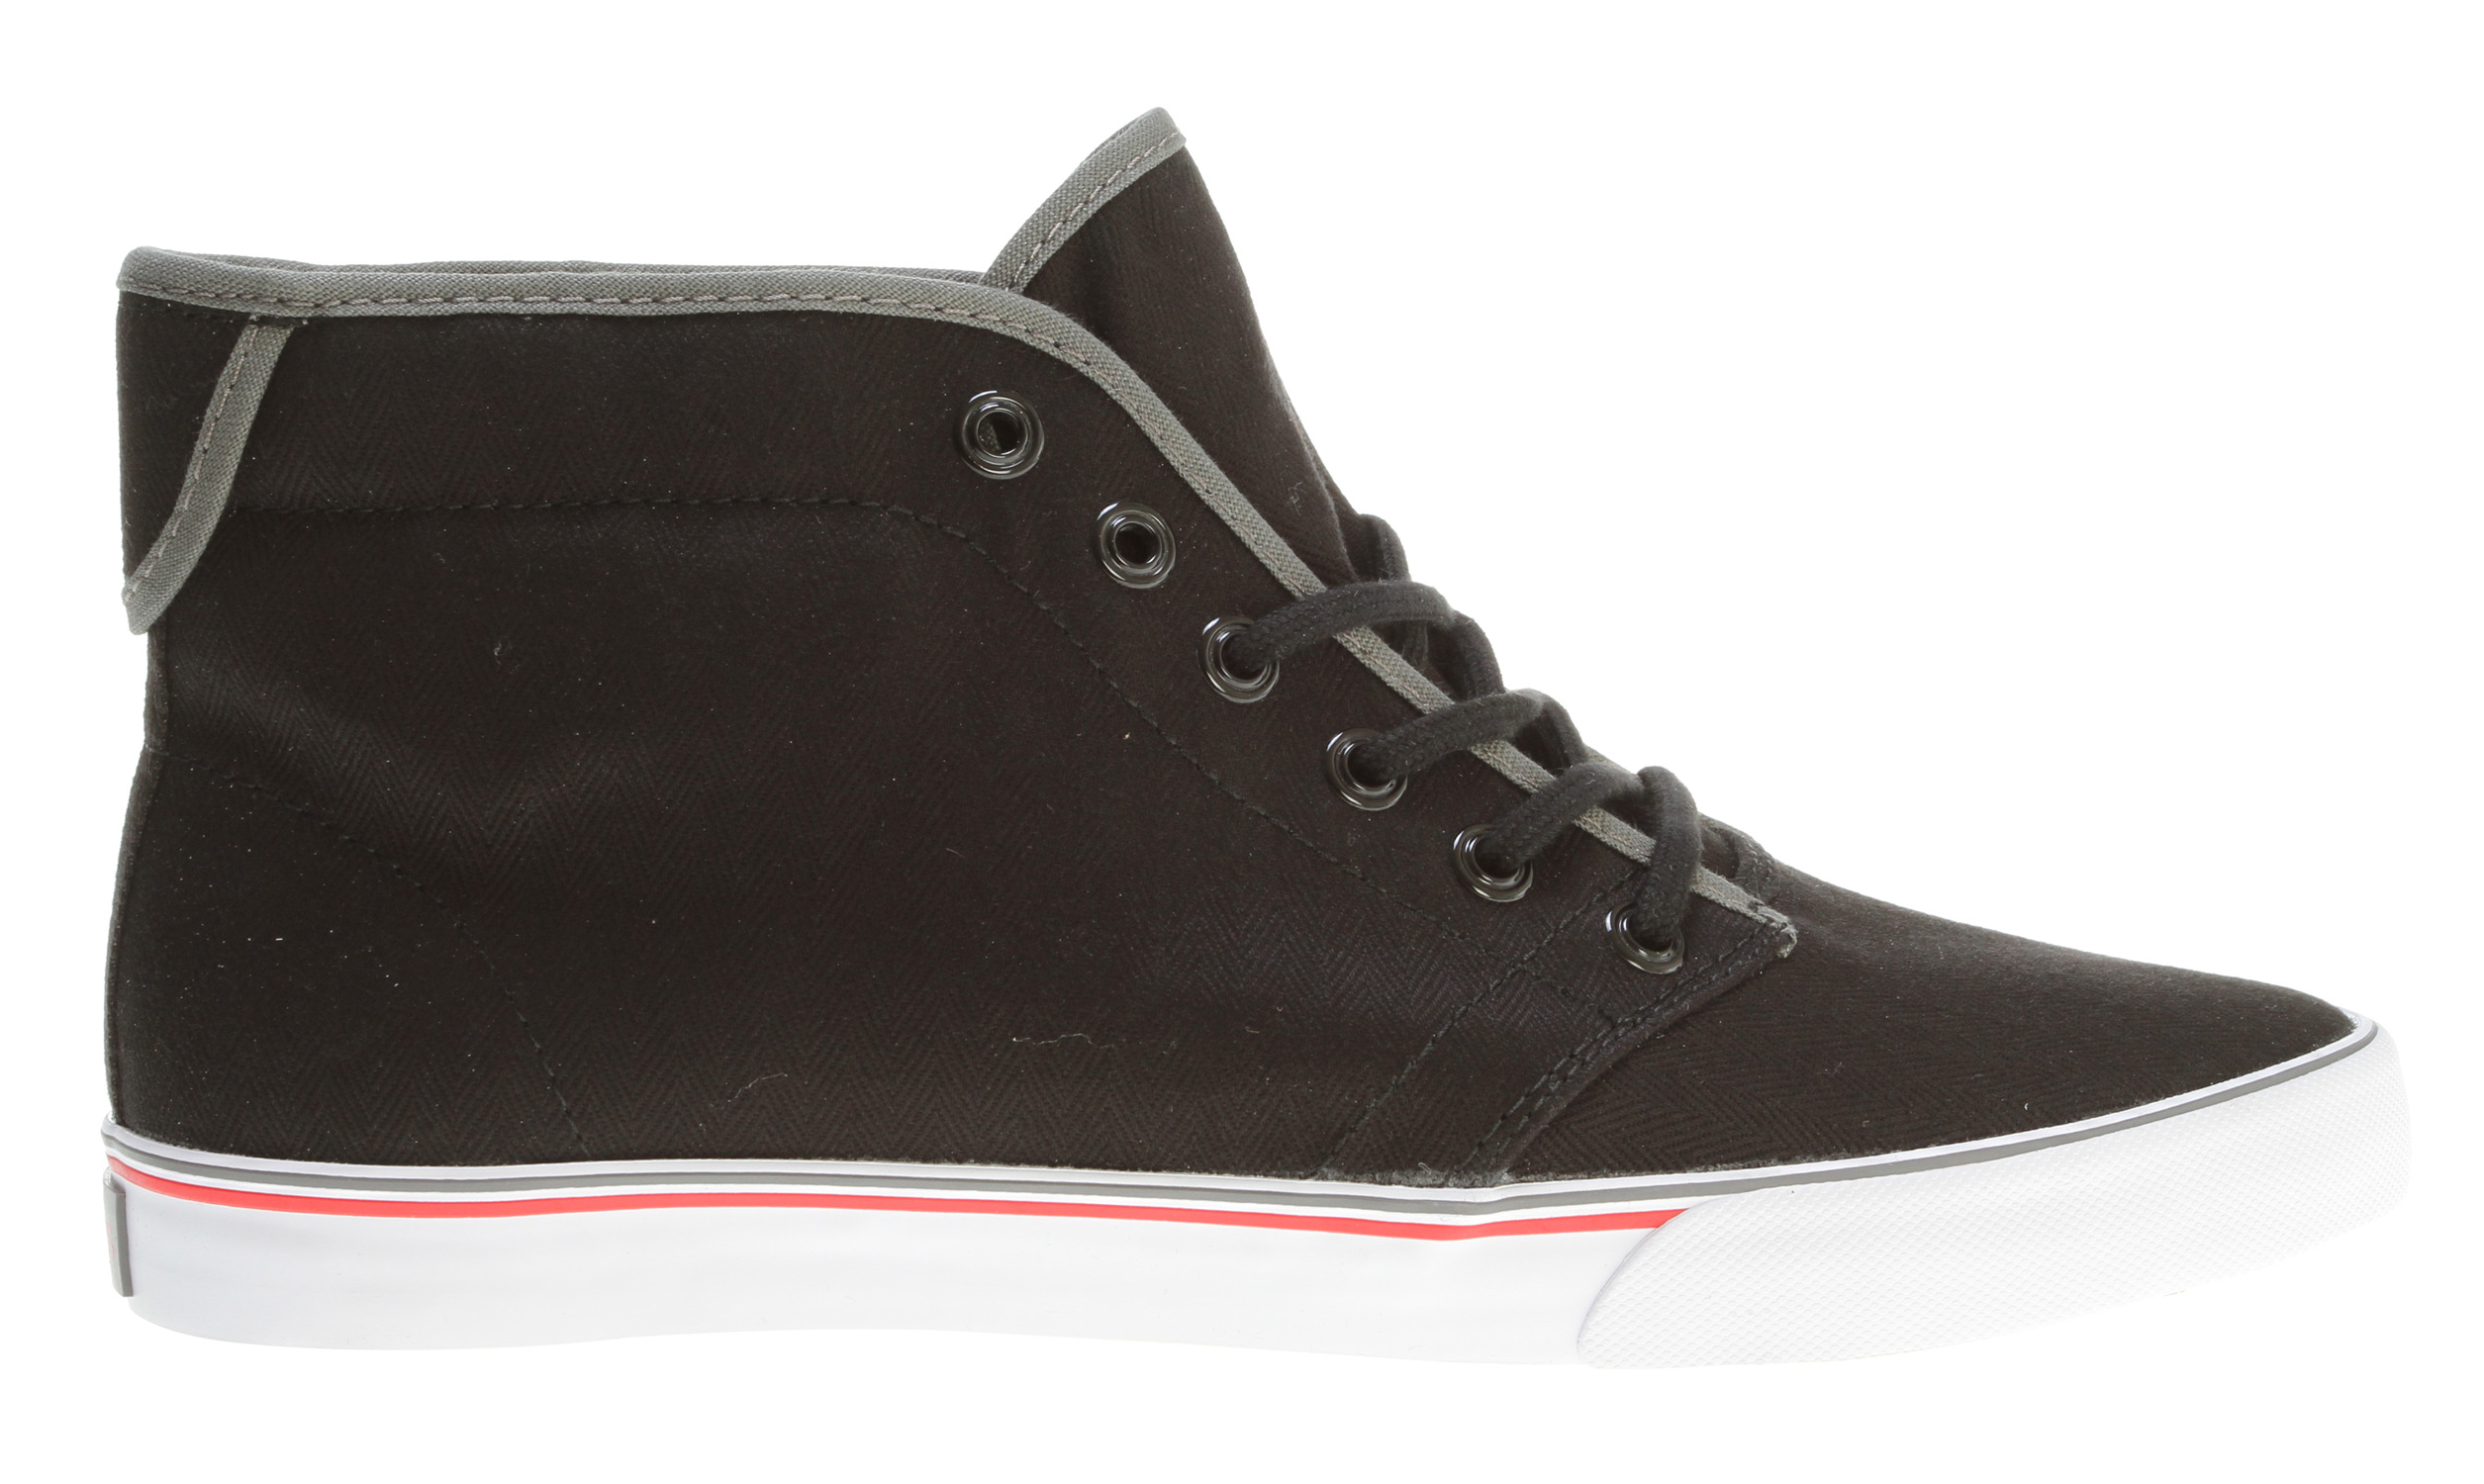 Skateboard The Gravis Slymz Mid Skate Shoes is a slim fit mid top in seasonal colors.Key Features of the Gravis Slymz Mid Skate Shoes: Soft Canvas Uppers Canvas Lining Double Stripe Foxing Latex With Rubber Heel Wedge Footbed High Traction Molded Rubber Outsole - $41.95